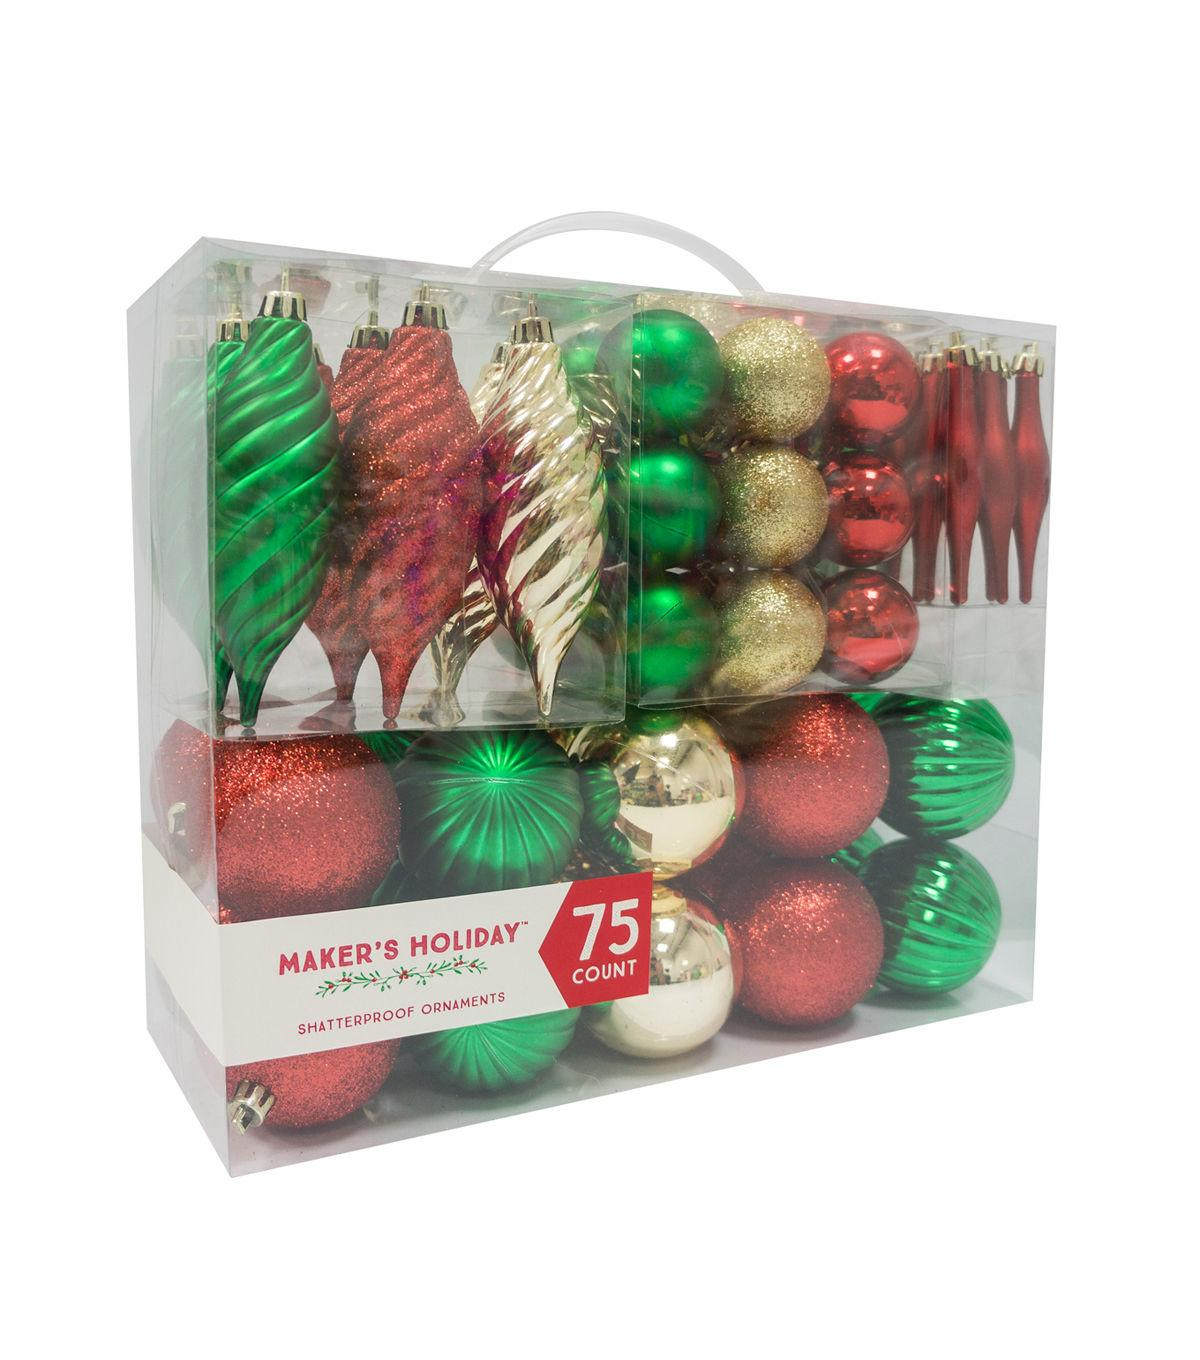 Maker's Holiday 75ct Shatterproof Ornaments-Red, Green & Gold